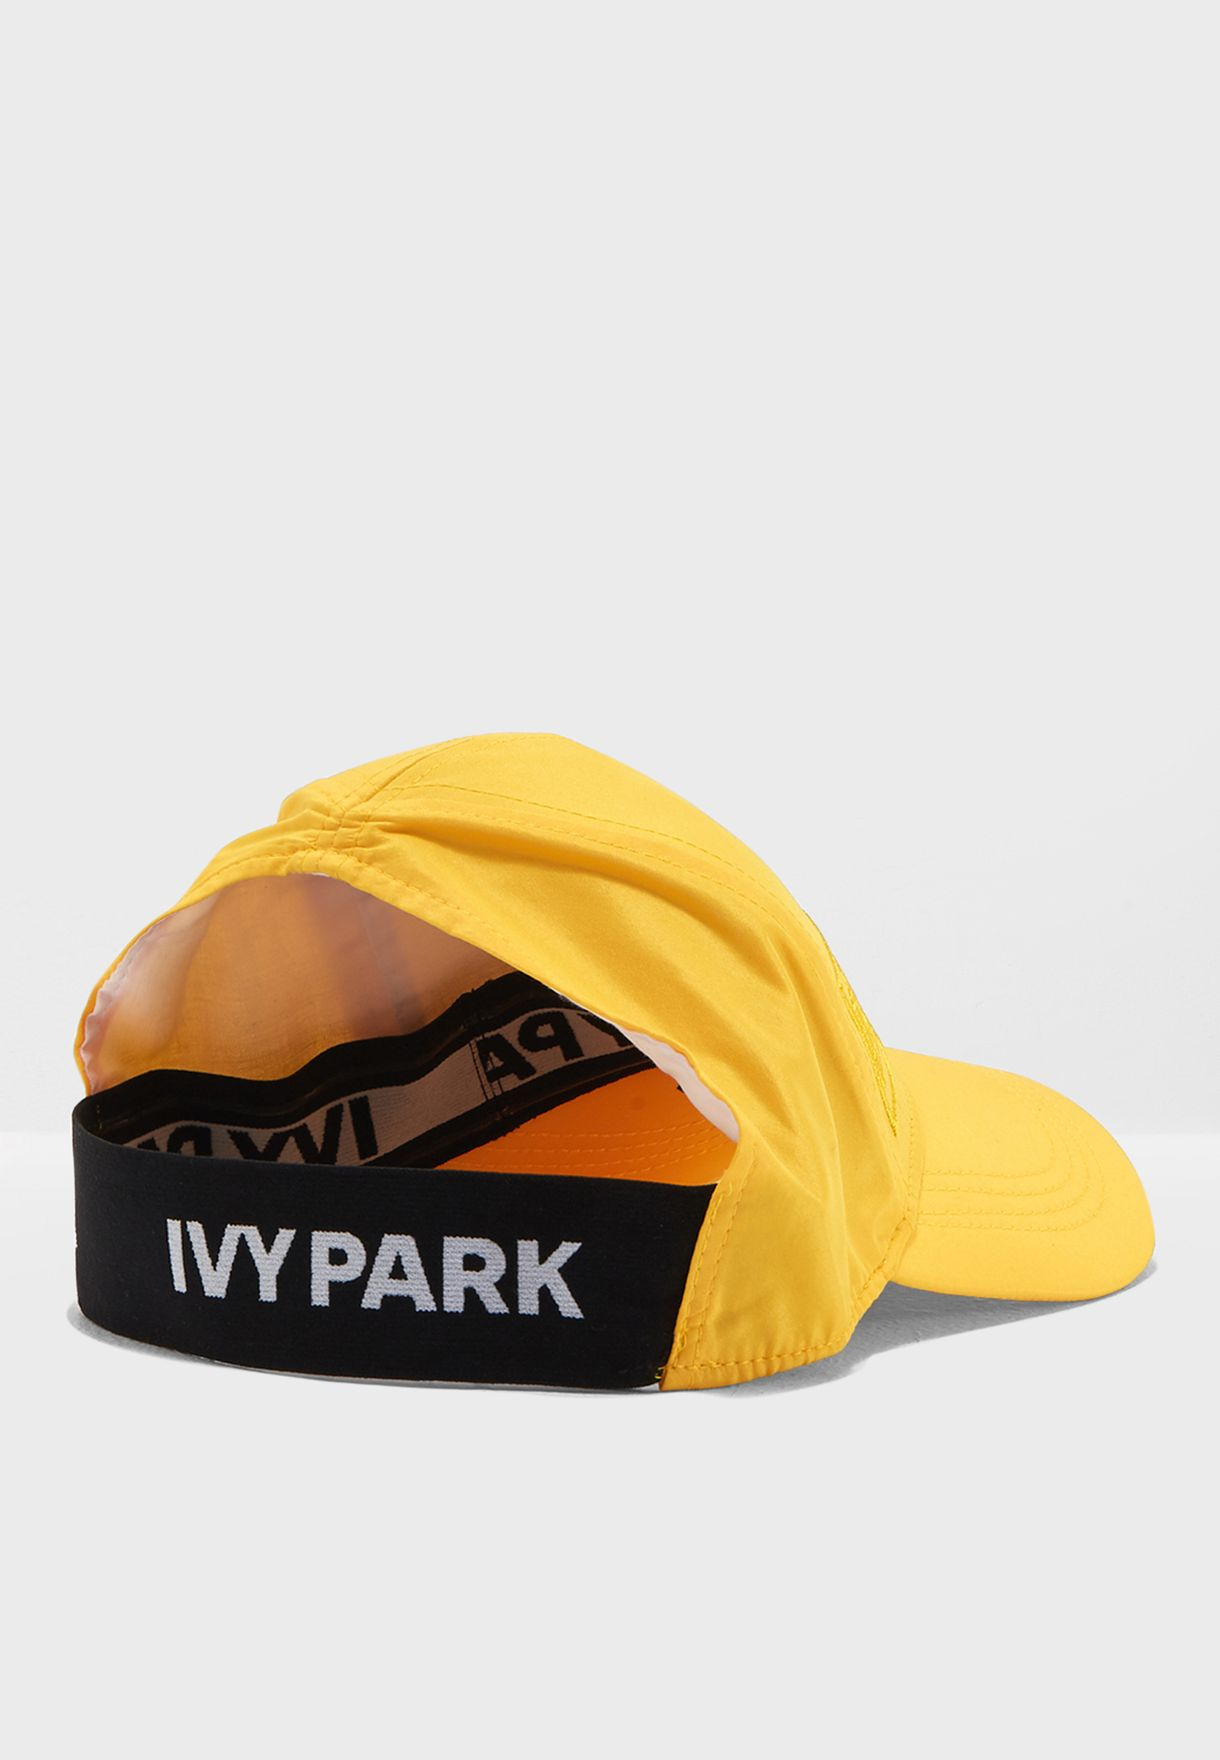 723aa38c45987 Shop Ivy Park yellow Hi Shine Running Backless Cap 29A33PYLW for ...